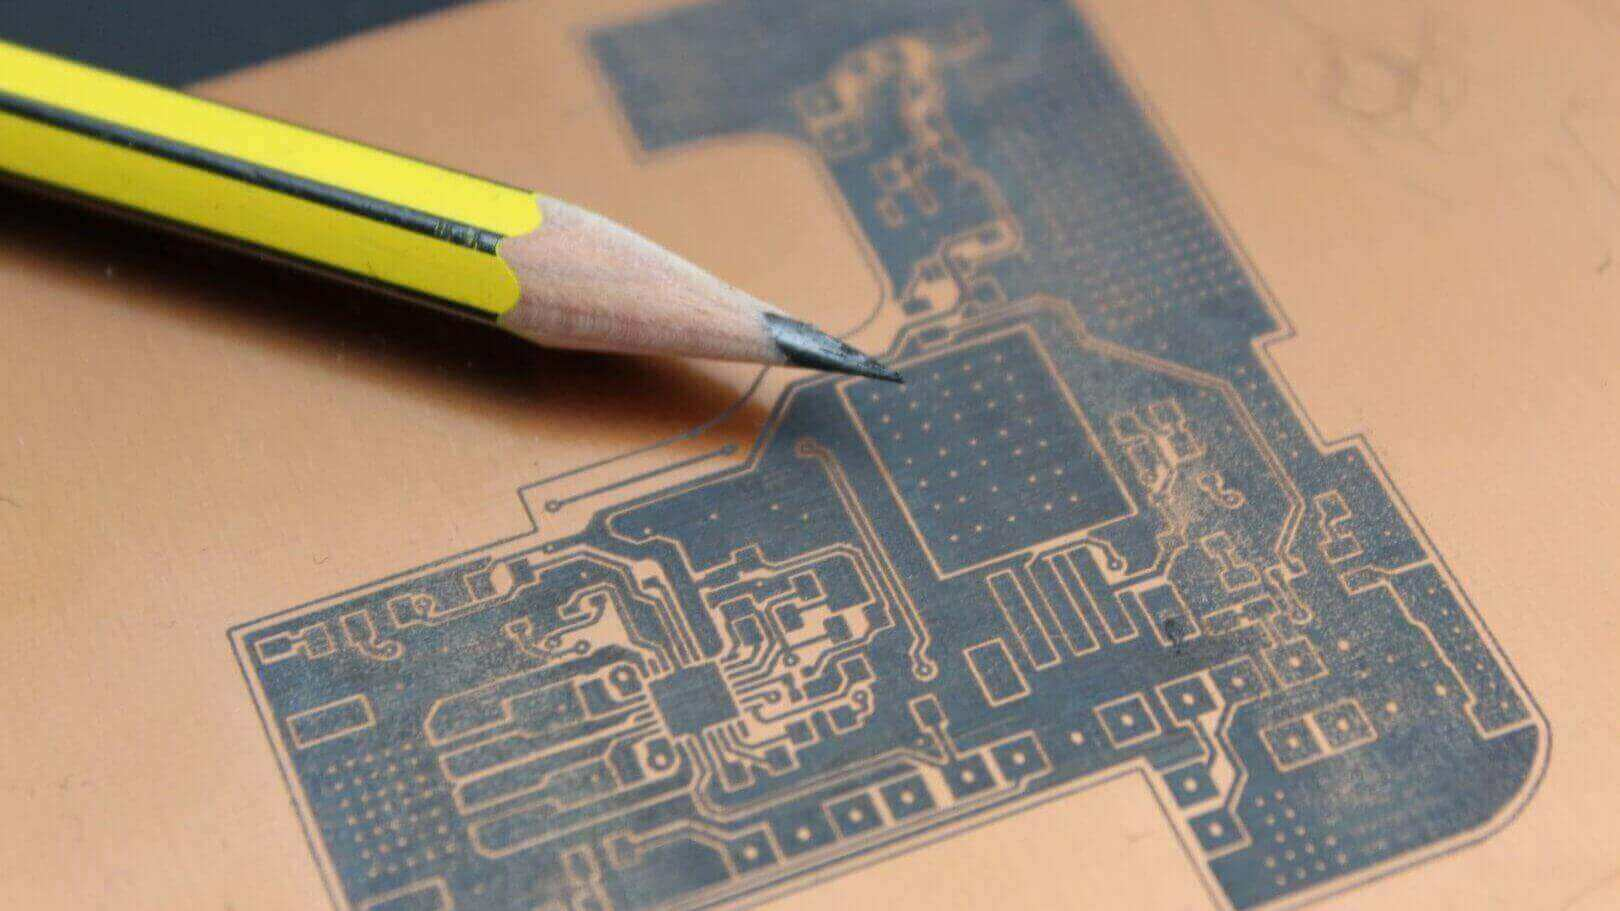 Thanks To New Laser Module, FABtotum 3D Printer Now Can Make PCBs | All3DP